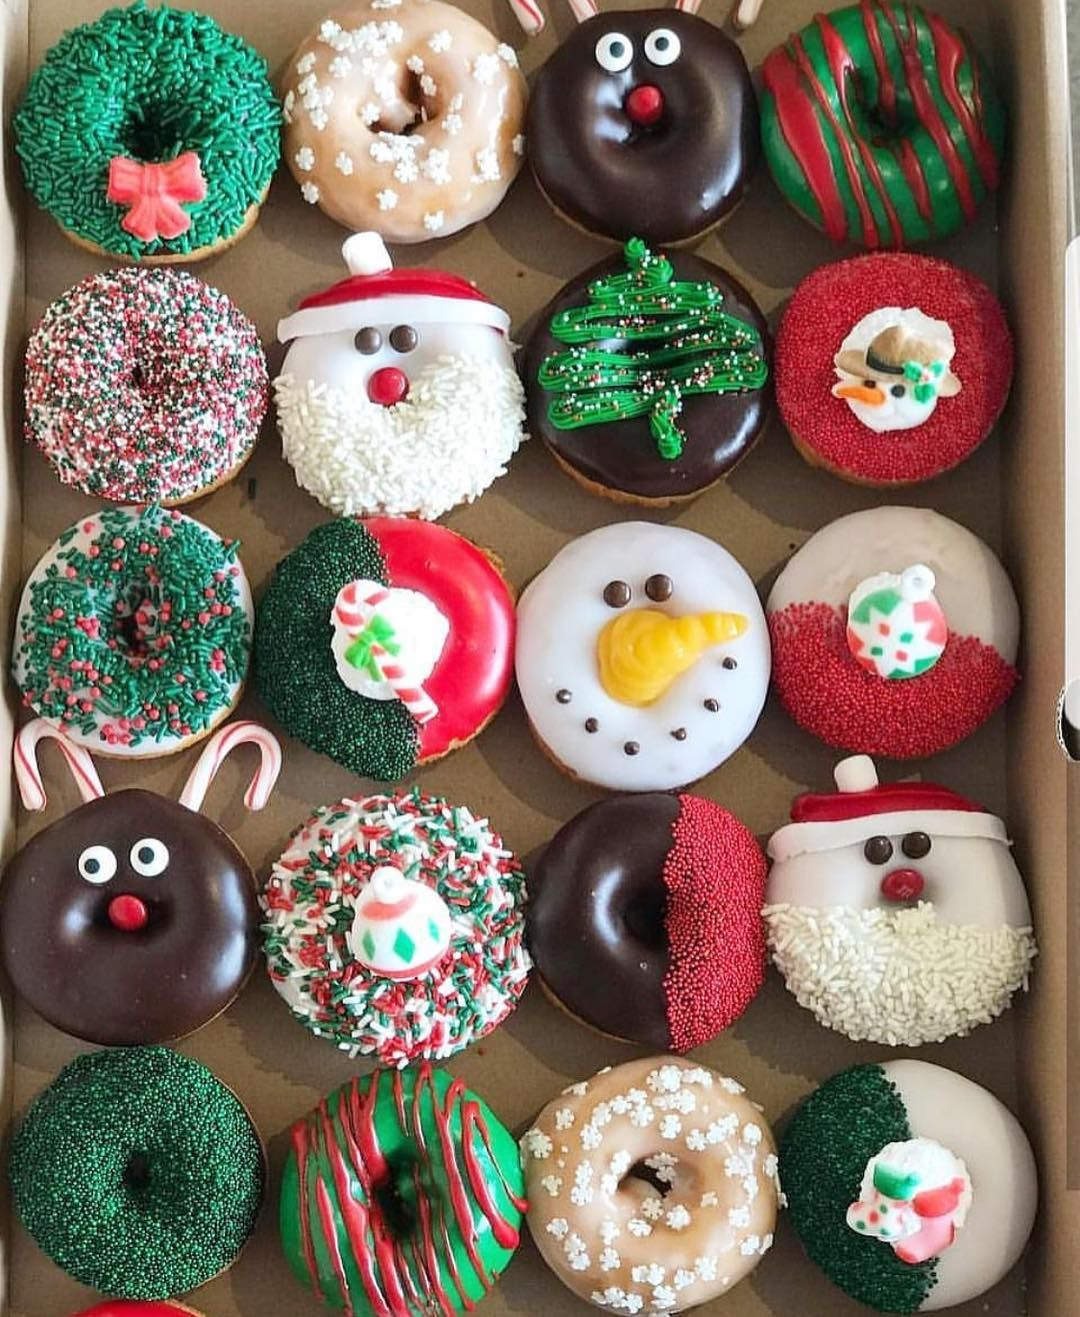 Christmas Toppers For Cupcakes.Christmas Donuts Page 5 Of 15 Cute Donuts Christmas